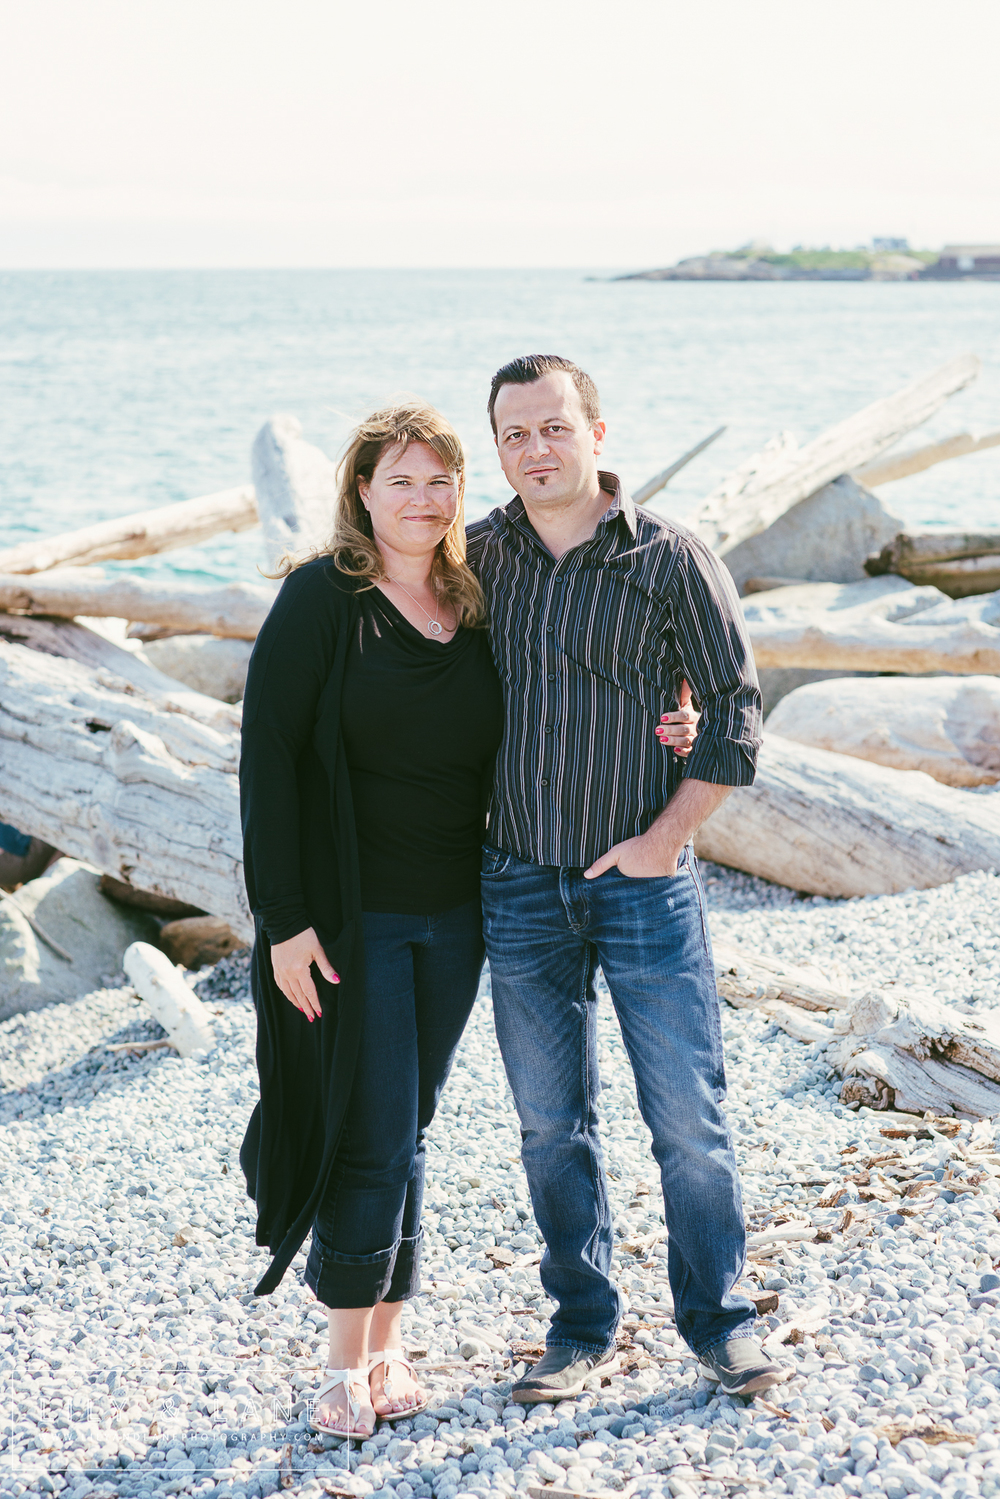 Nicola_Reiersen_Family_Photographer_Victoria_BC_Beach_Session.jpg